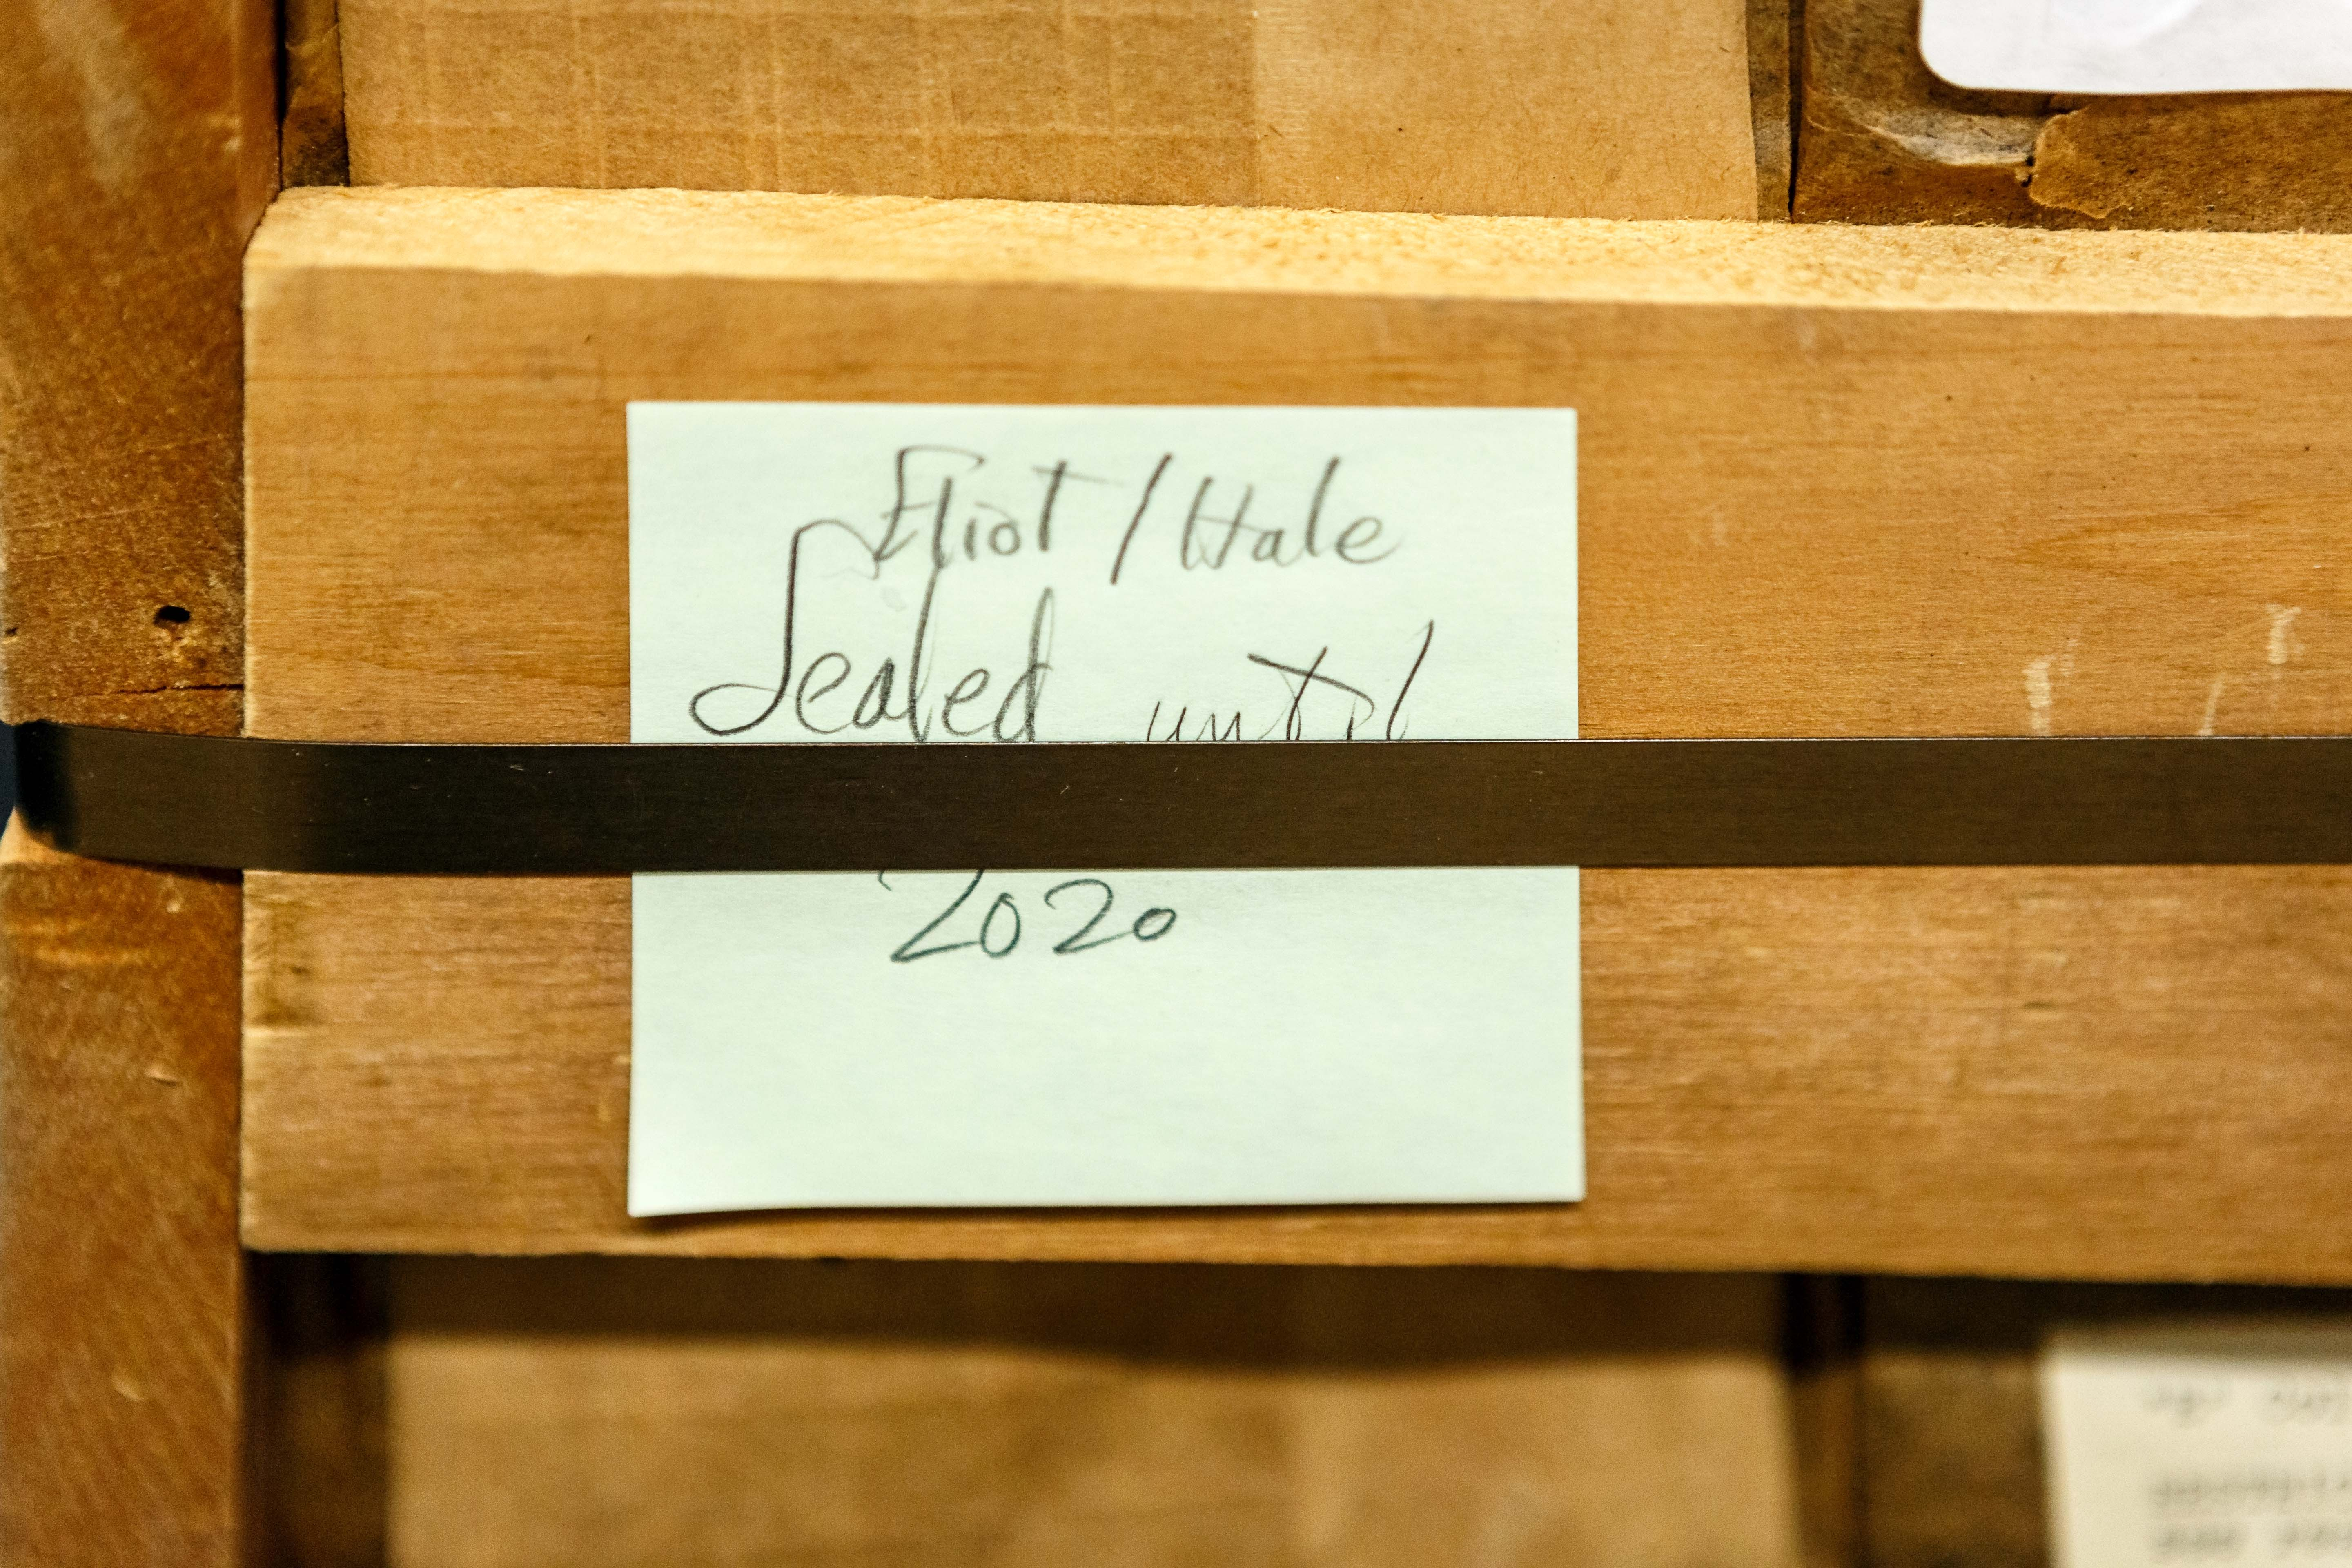 "A crate that housed the Eliot letters for over 60 years with a post-it note reading ""Eliot/Hale Sealed until 2020"""